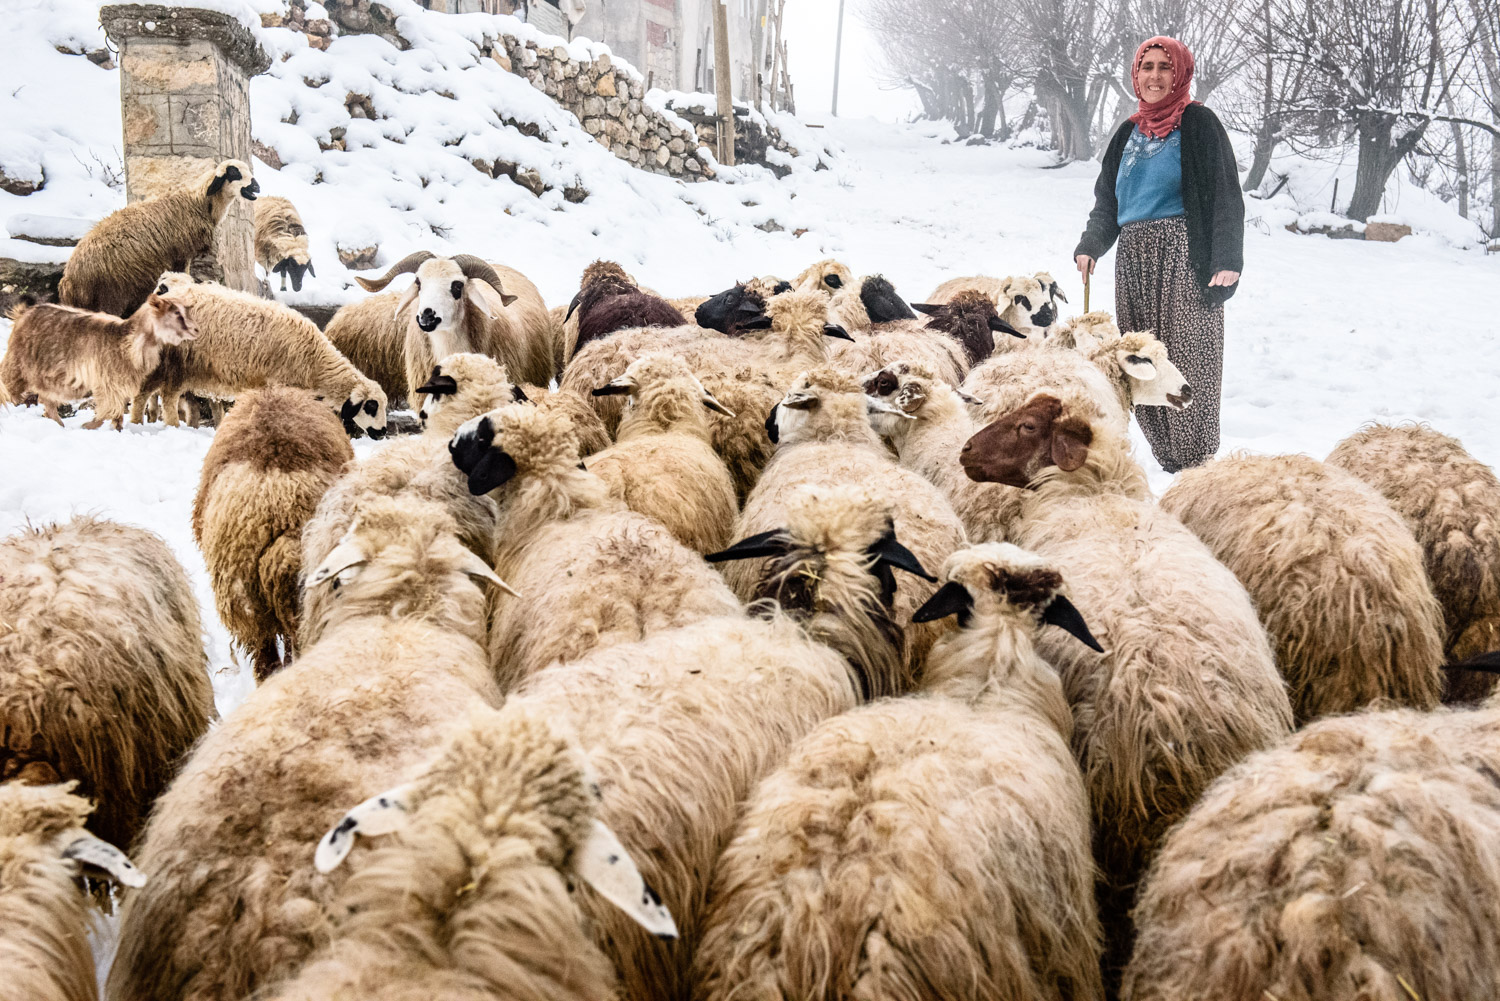 Here, sheep are being led to drink at the springs in a small village in the Munzur Valley.